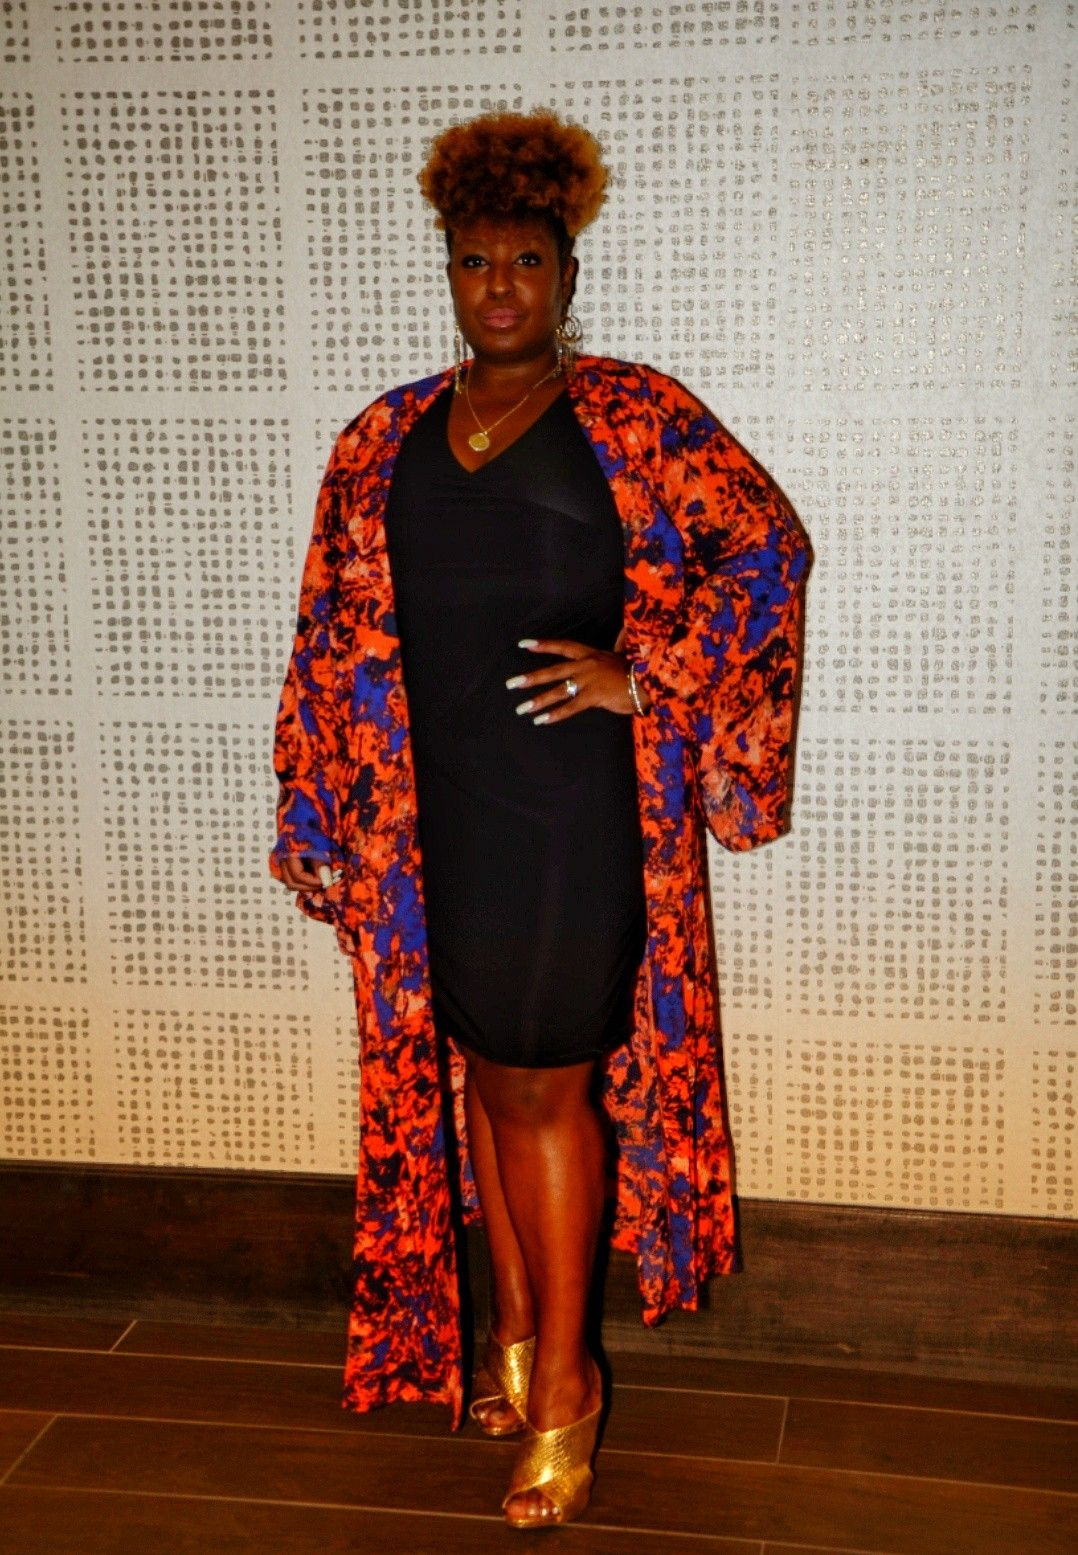 Phoenix Duster By Shavonne Dorsey In 2020 Fashion Fashion Design Warm Colors